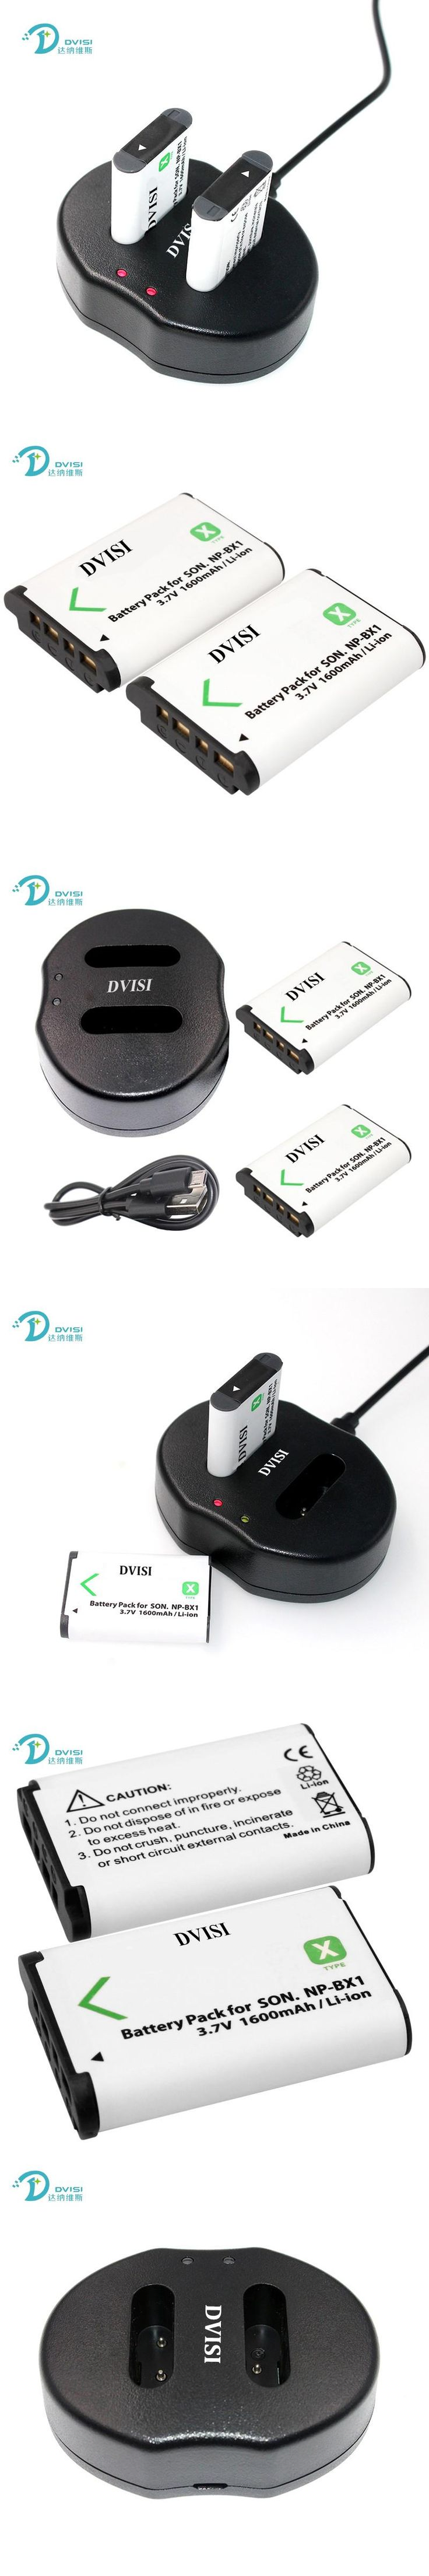 2pcs NP-BX1 NP BX1 Camera RechargeableBattery + USB Dual Charger for Sony HDR-AS100v AS30 AS15 DSC-RX100 HX400 WX350 Camera